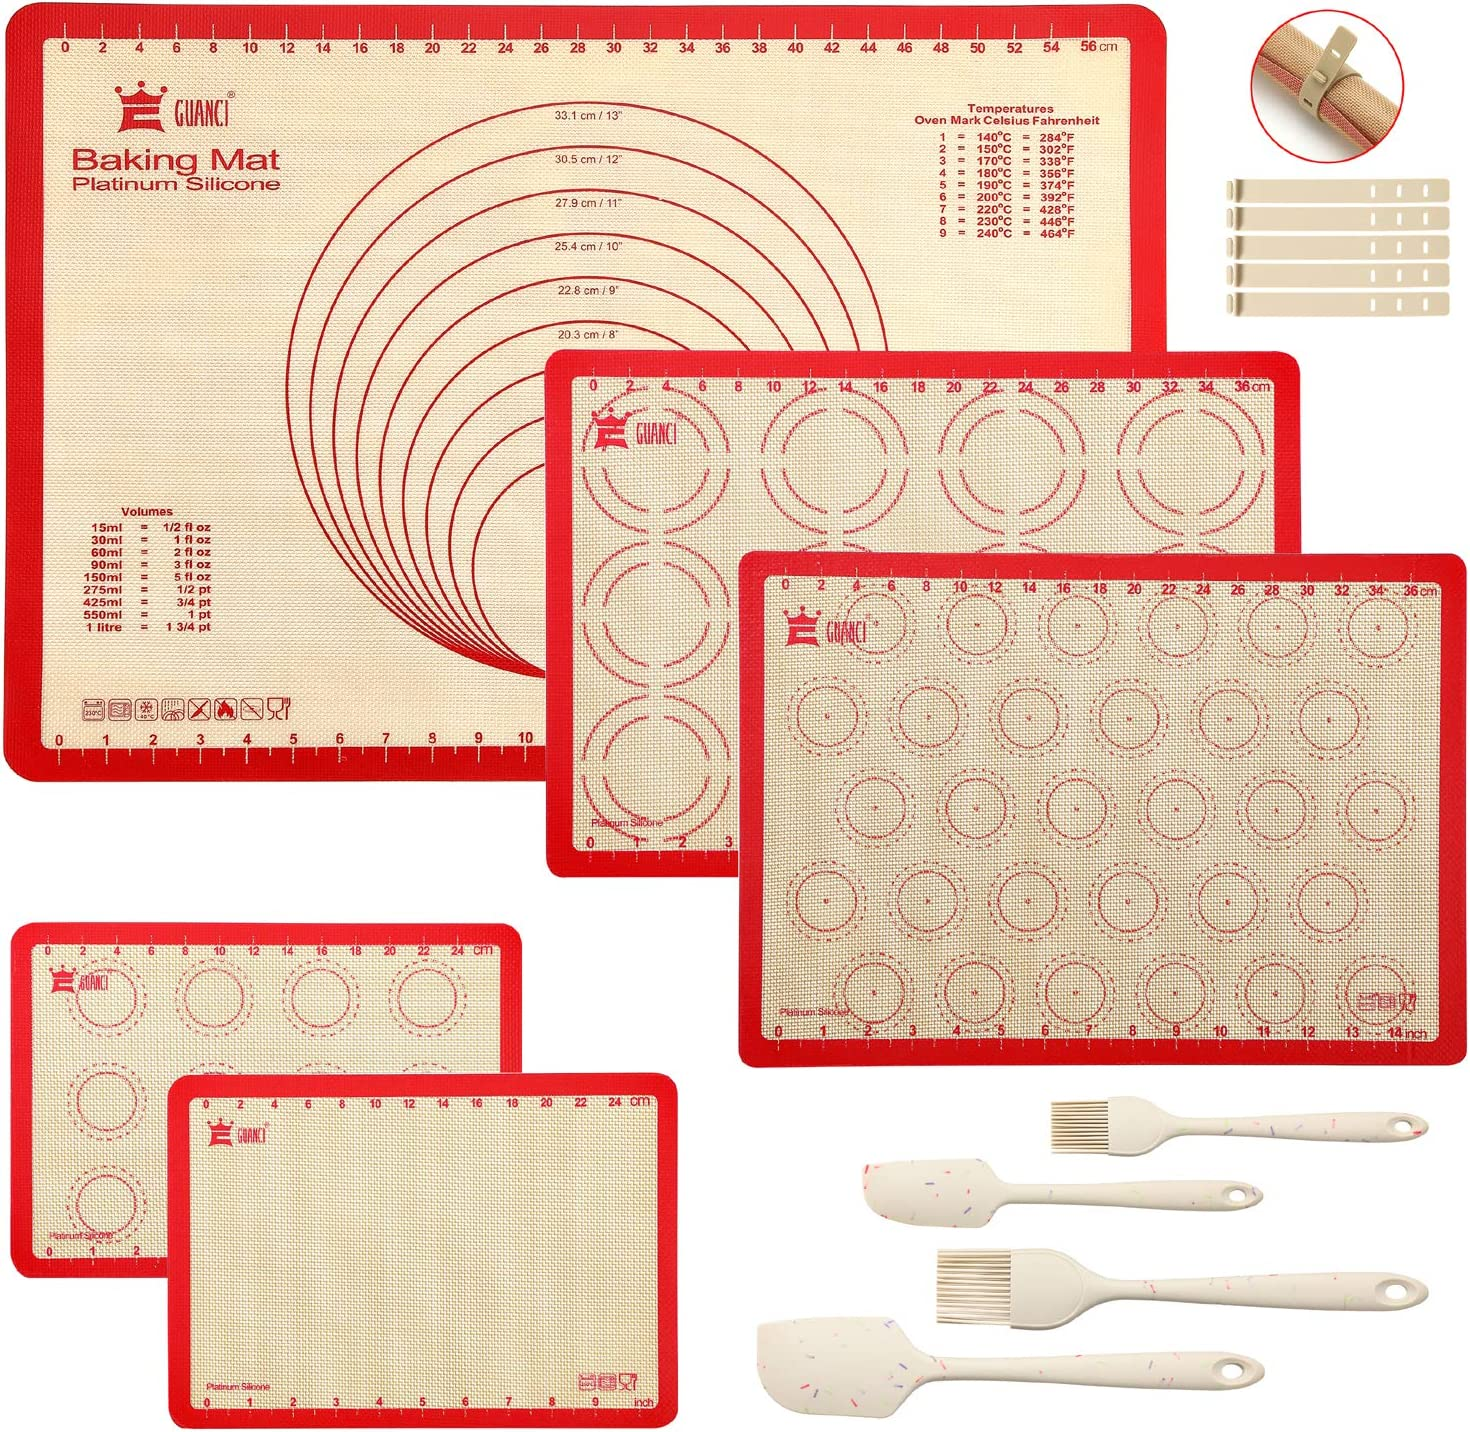 9-Piece Silicone Baking Mat Tucson Mall Set Cash special price 1Pcs Pastry 2'' 25''x17-1 2